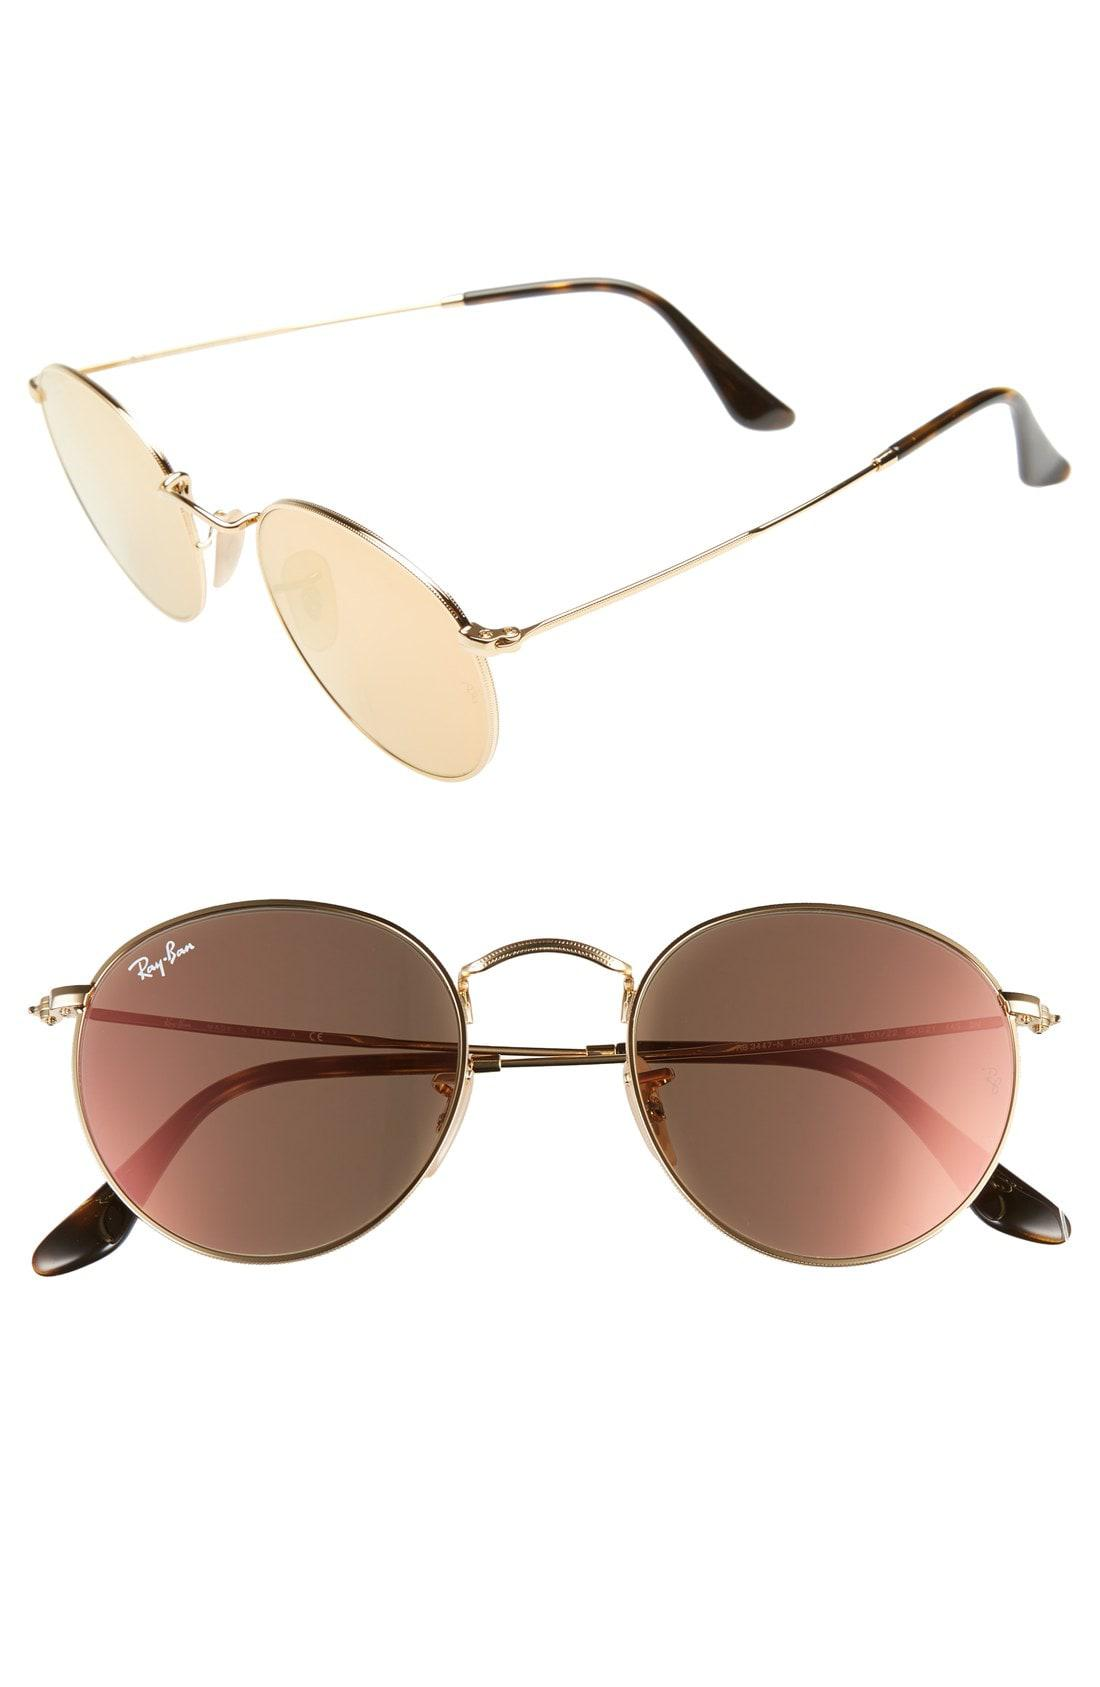 Lyst - Ray-Ban Icons 50mm Round Sunglasses - 6c7a3103e